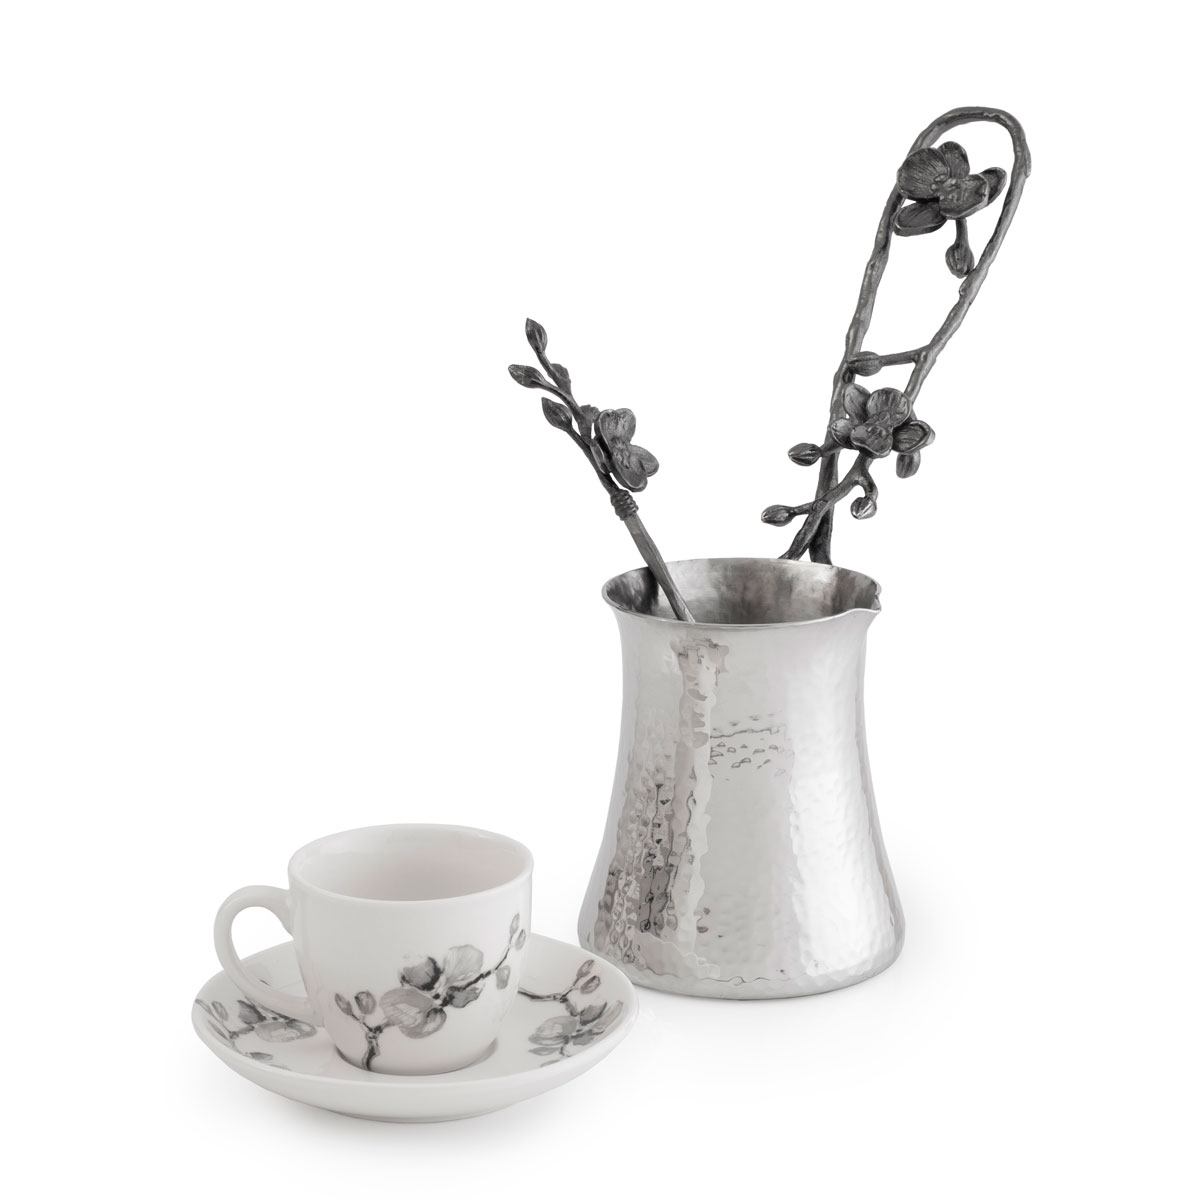 Michael Aram Black Orchid Coffee Pot and Demistasse Set